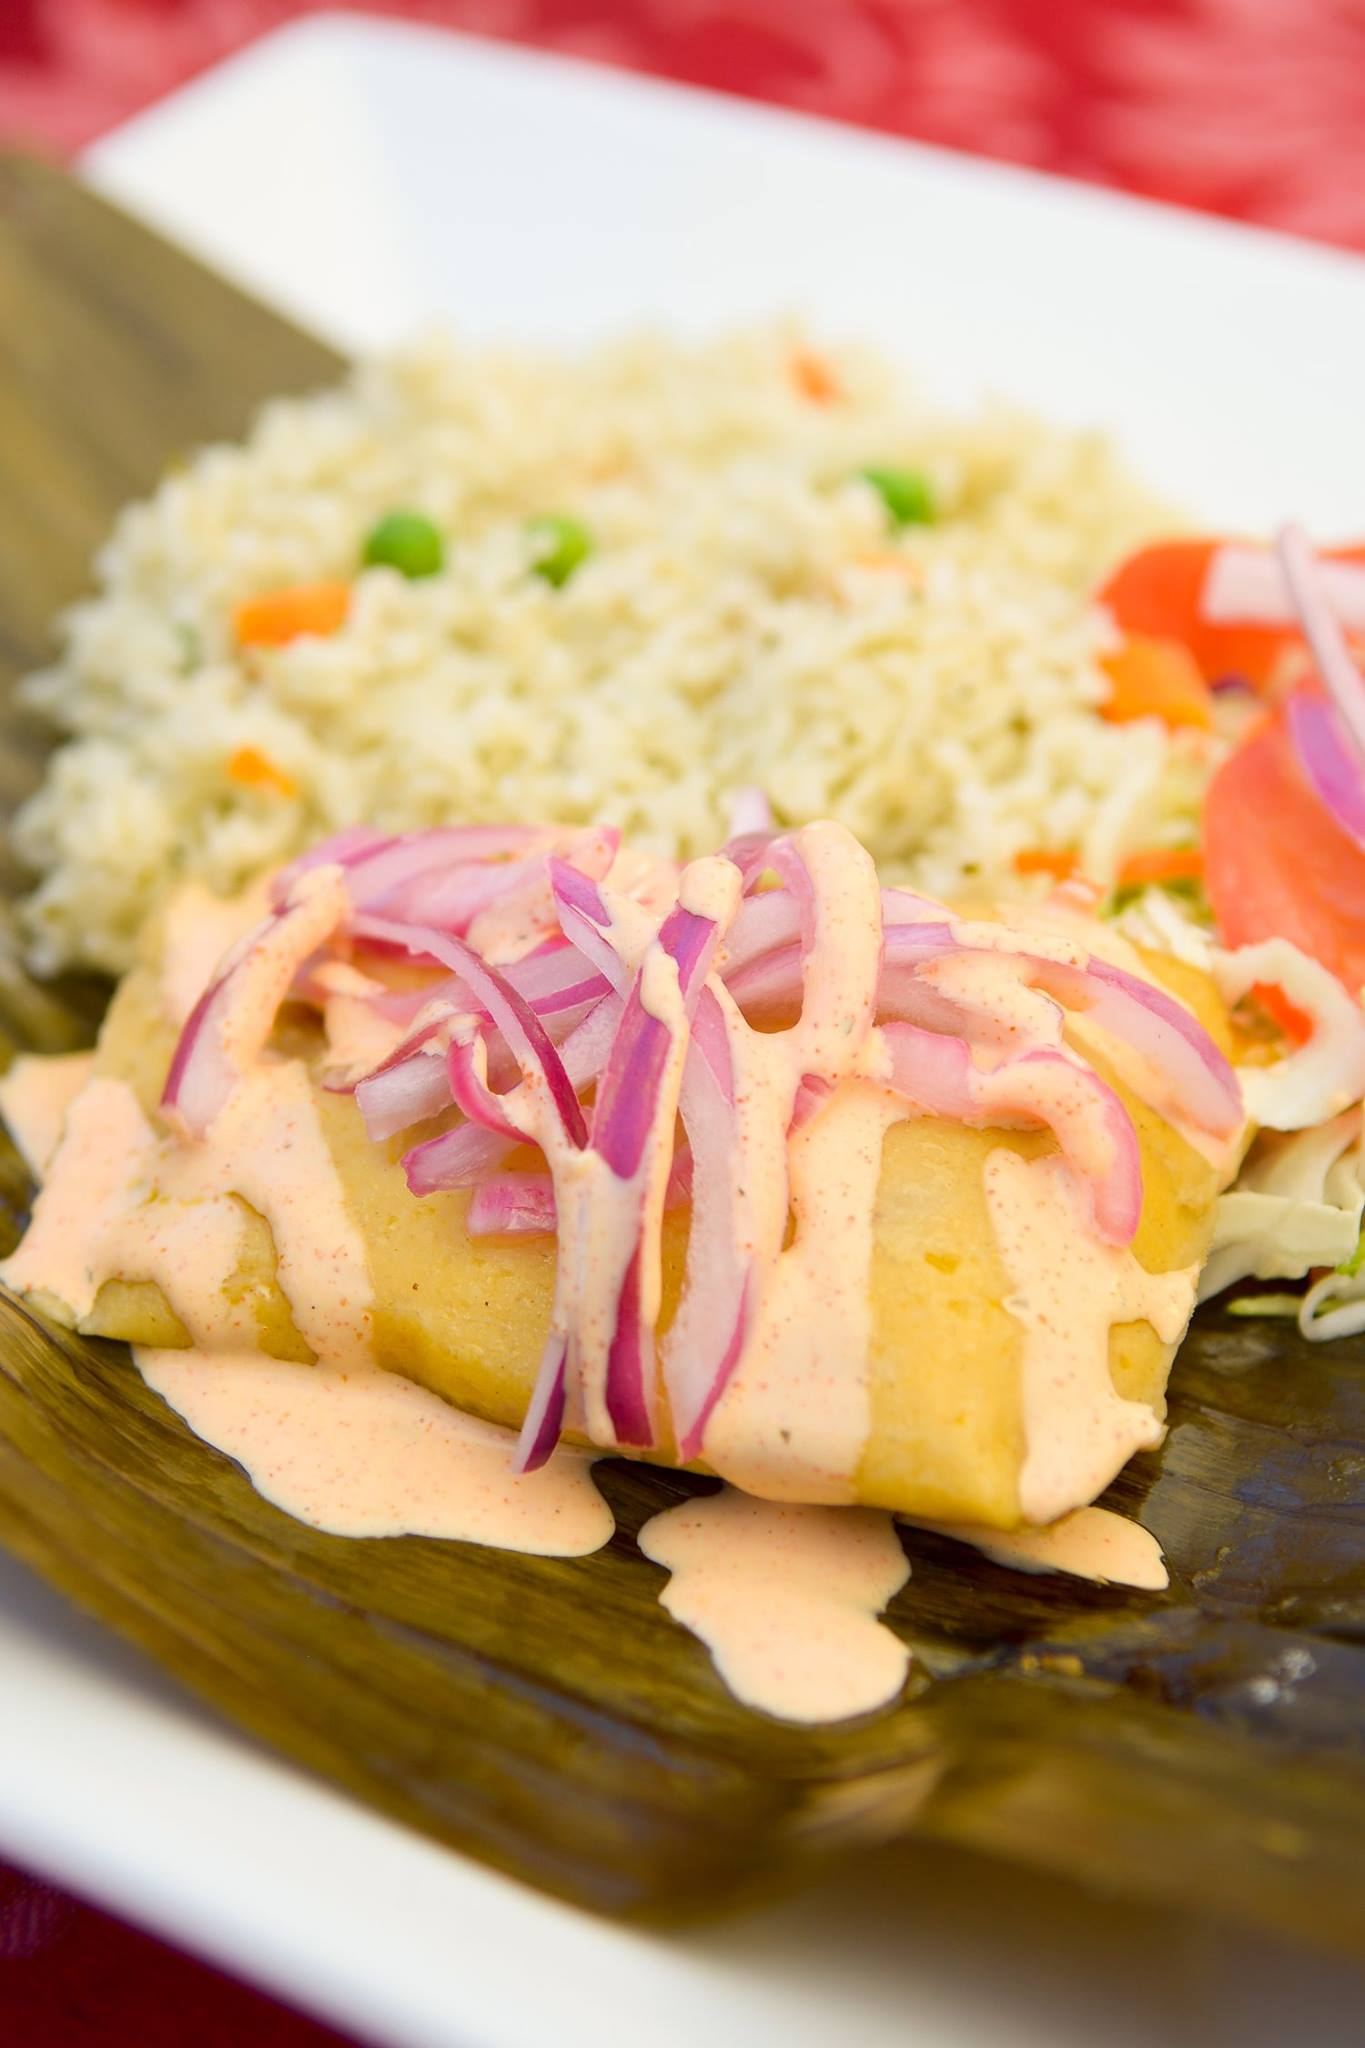 Who Could Resist Our Delicious Tamale Wrapped in a Plantain Leaf With Cilantro Rice and Salad!